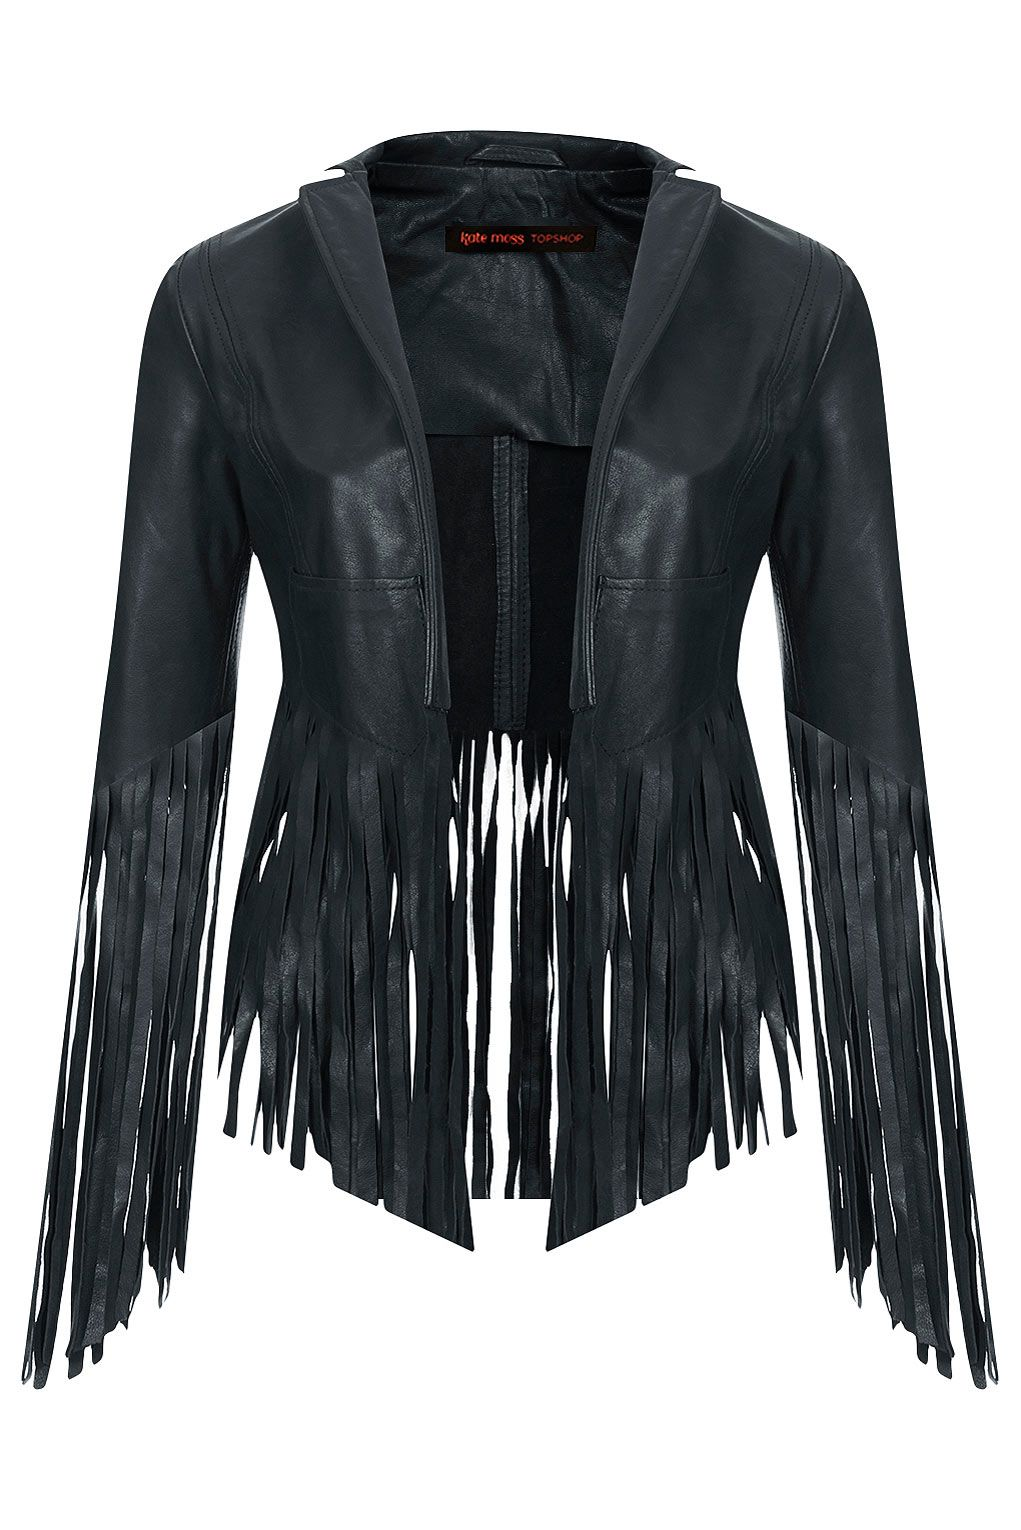 e14675ec4 Fringed Leather Jacket by Kate Moss for Topshop - Jackets & Coats ...